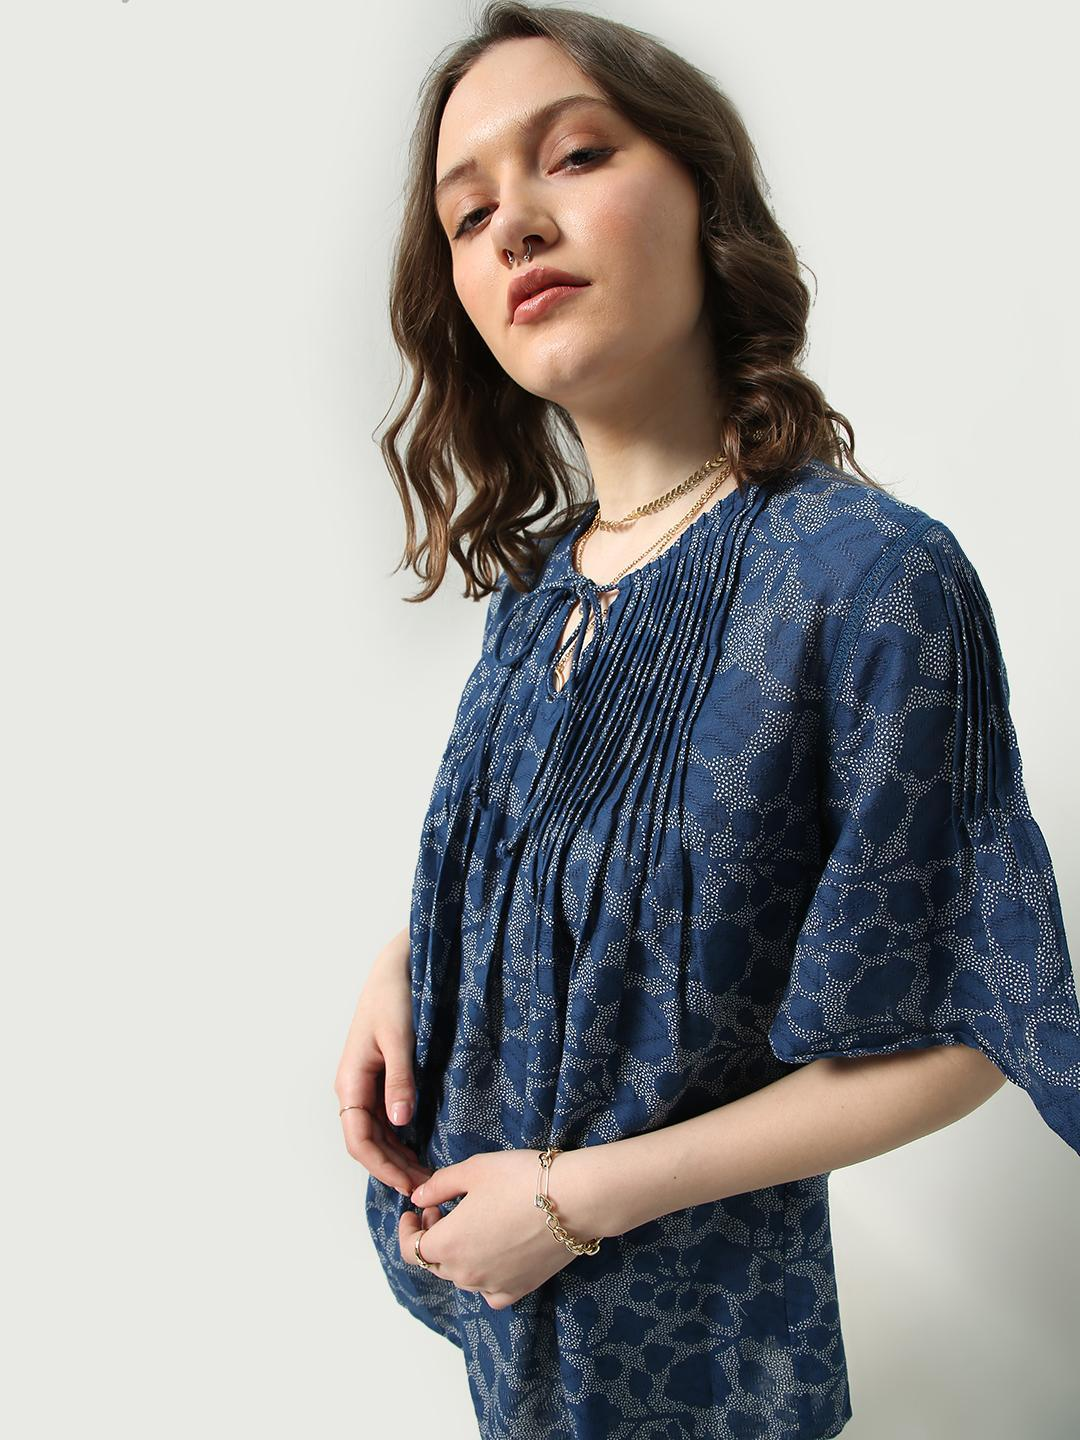 Oxolloxo Navy Floral Print Keyhole Neck Tunic Top 1